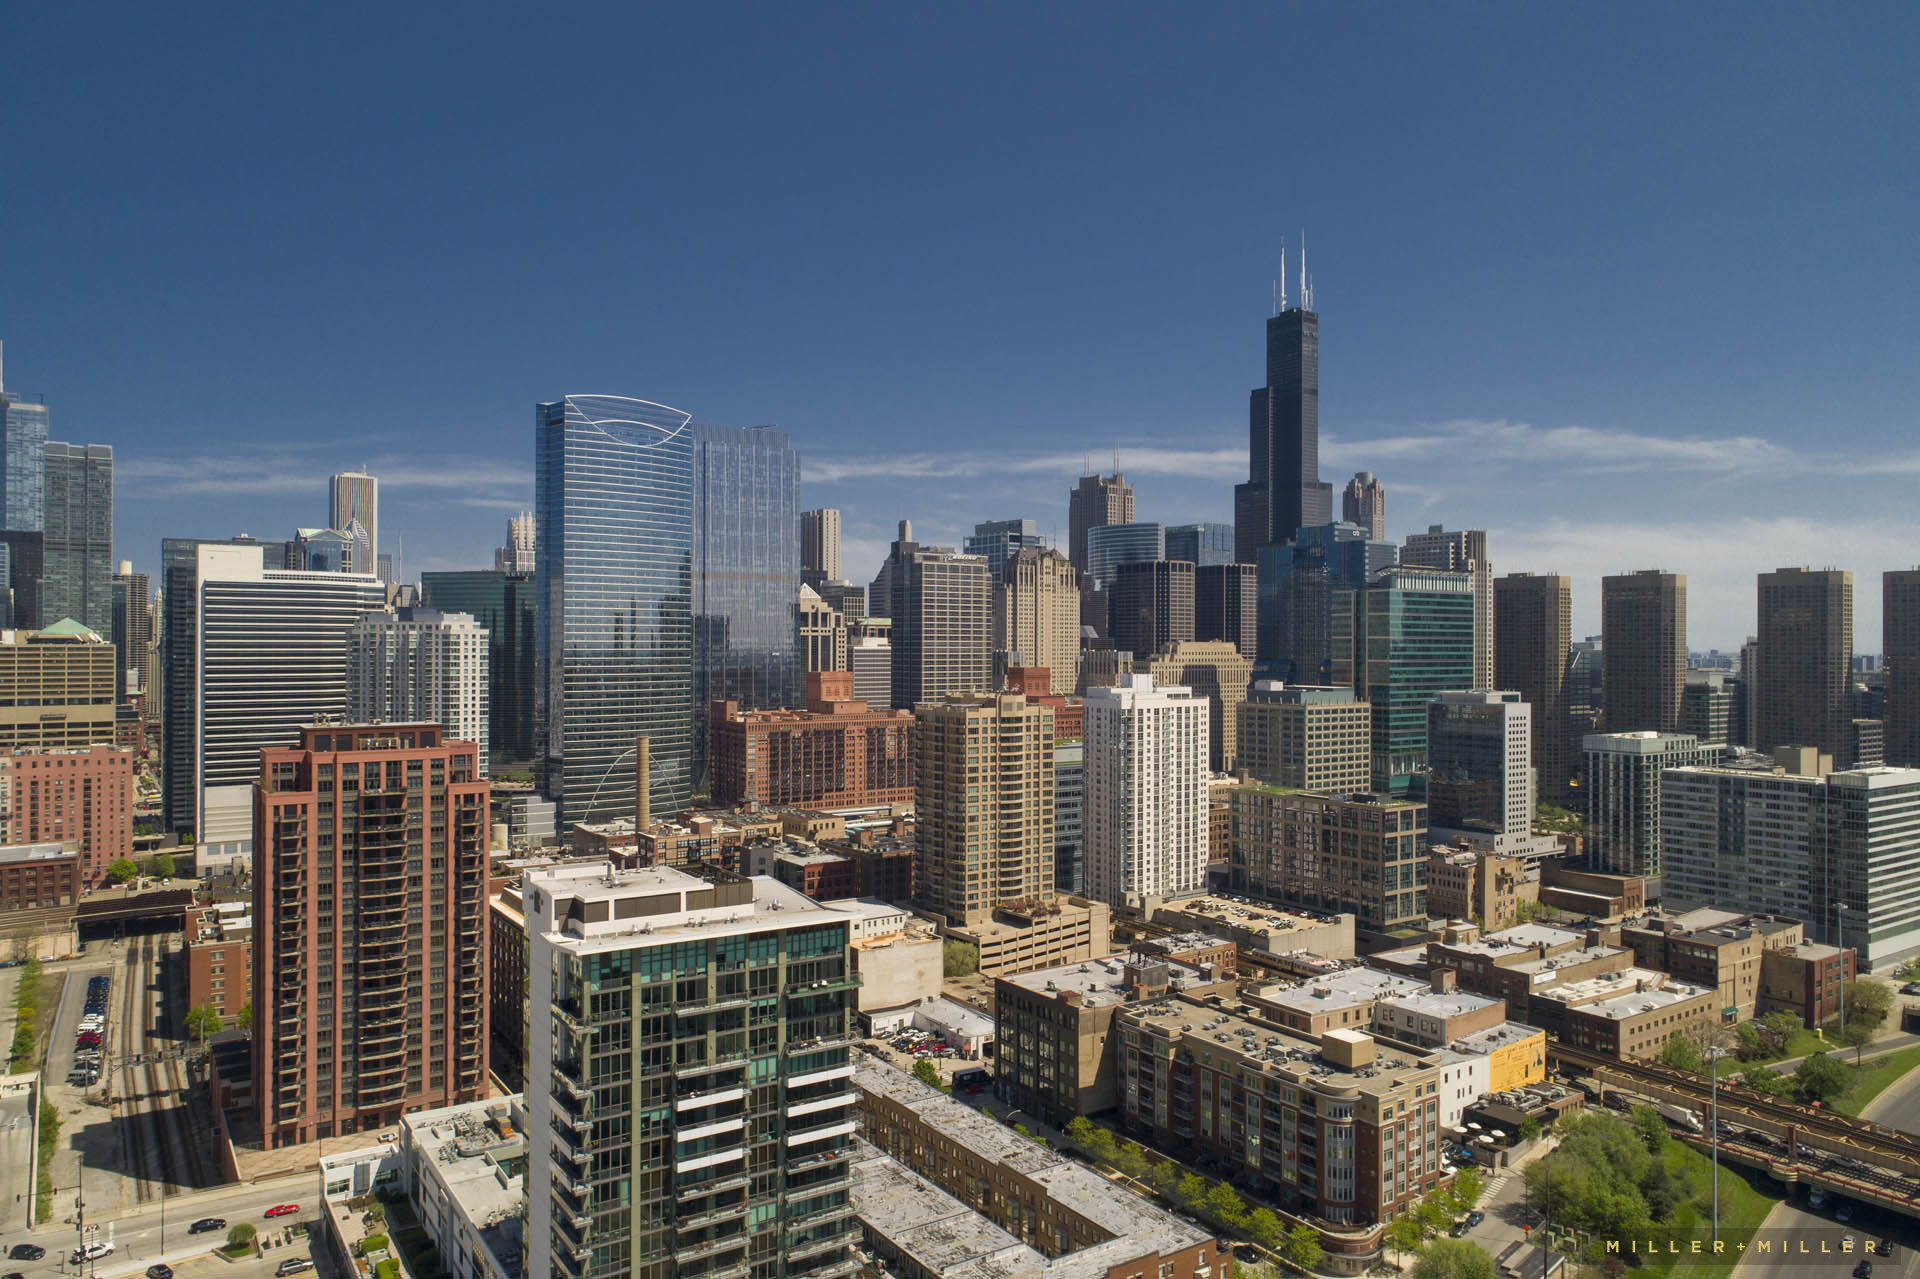 Skyscrapers Chicago Skyline Drone Building Photos